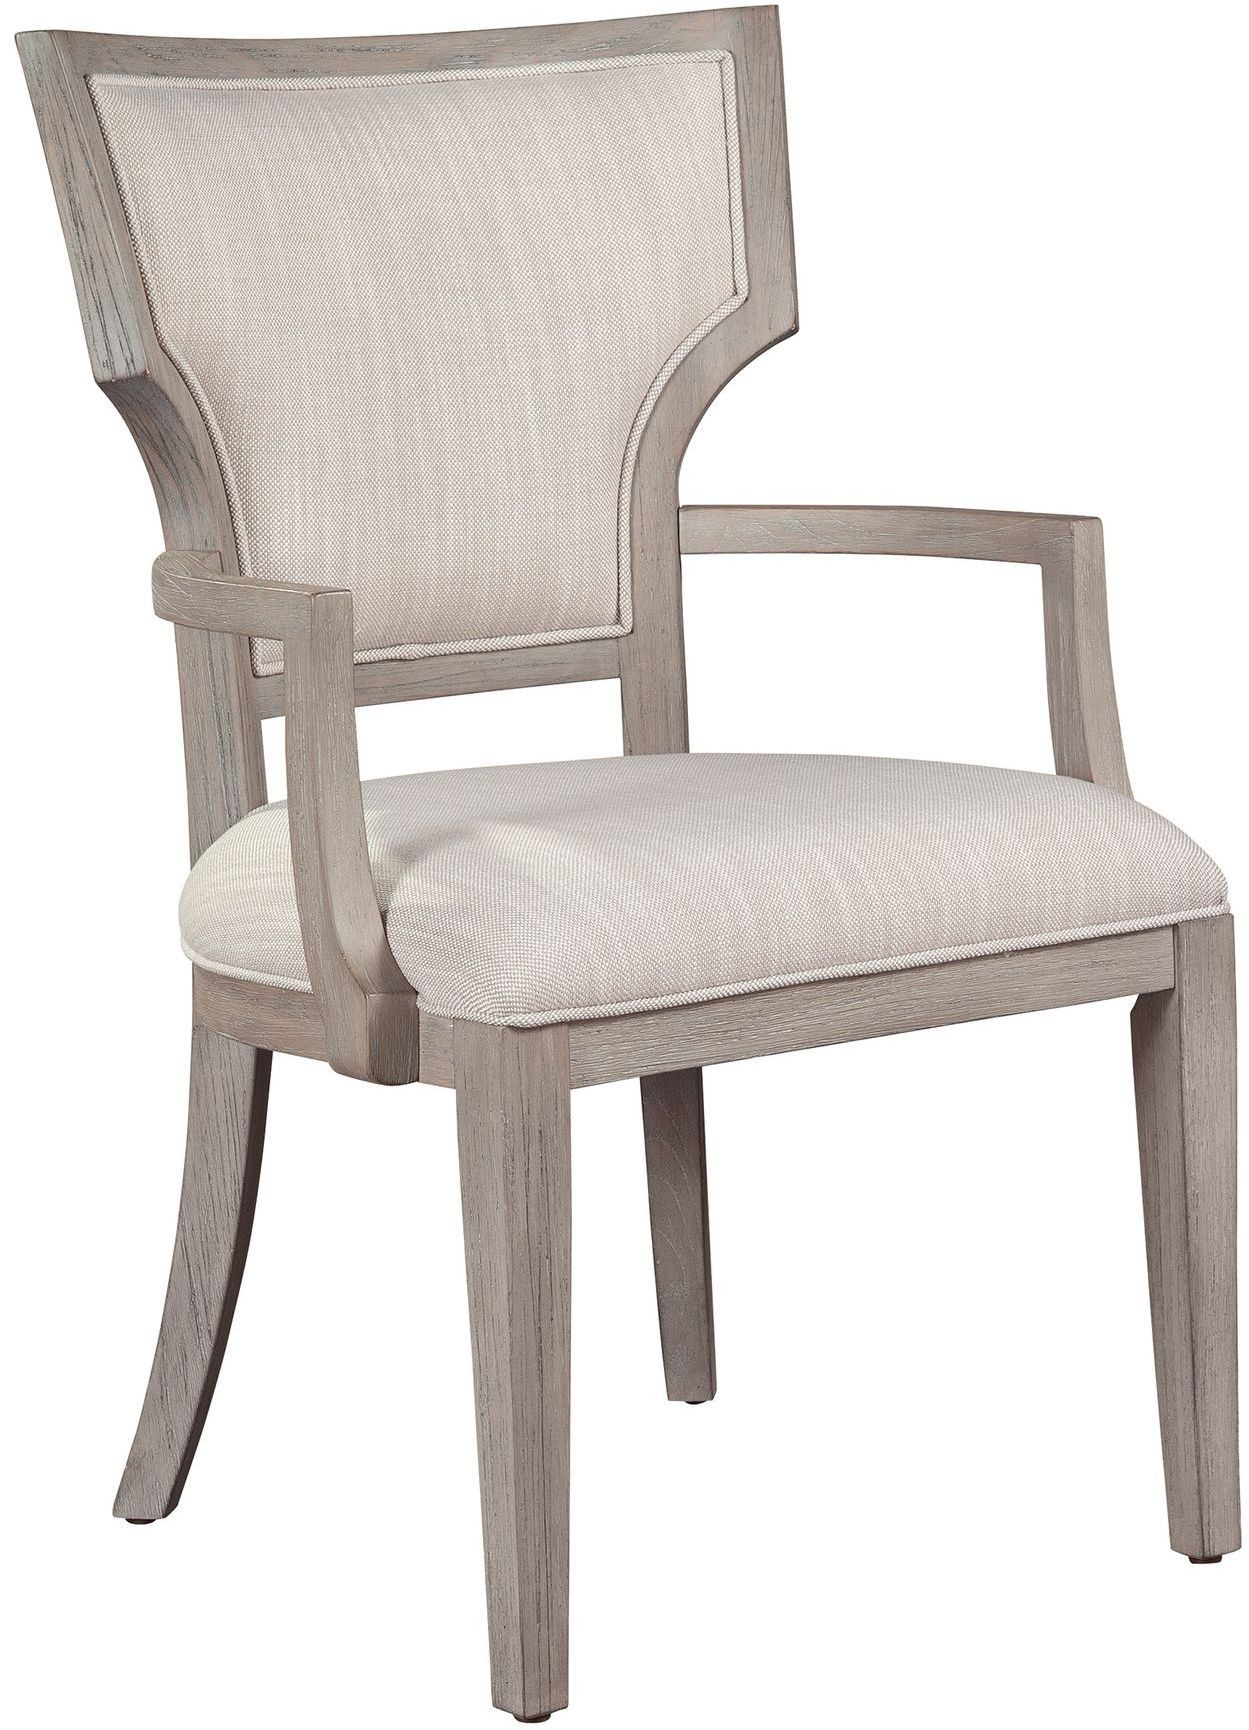 Fan Back Chair Berkeley Heights Wire Brushed Fan Back Arm Chair Set Of 2